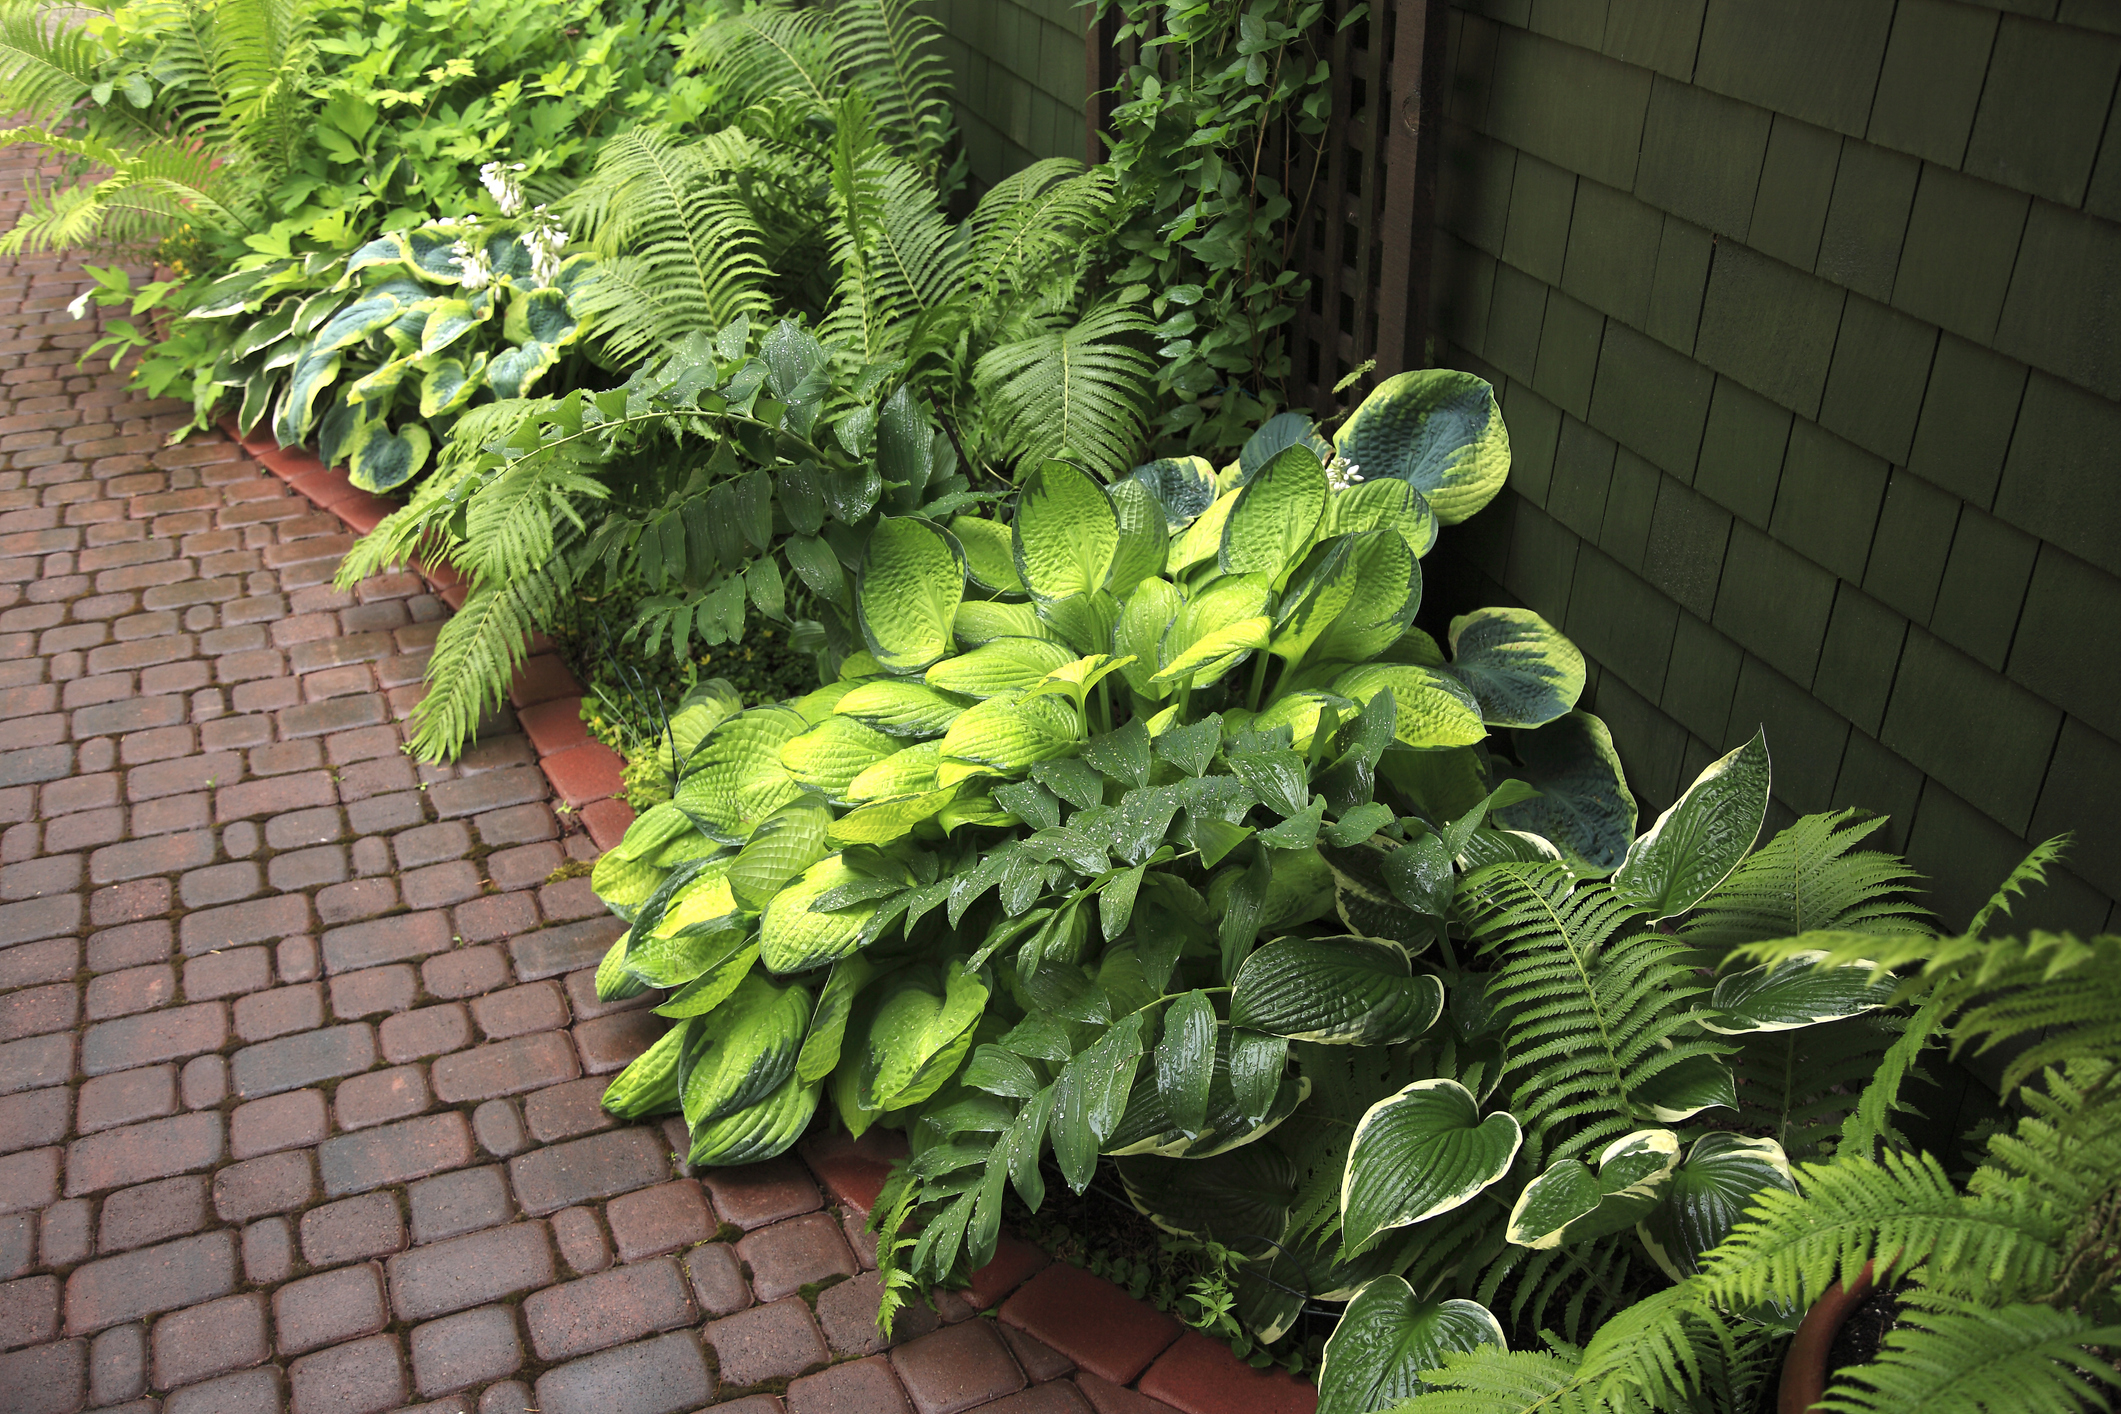 Variegated hosta plants and lush leafy ferns can brighten up dark areas.